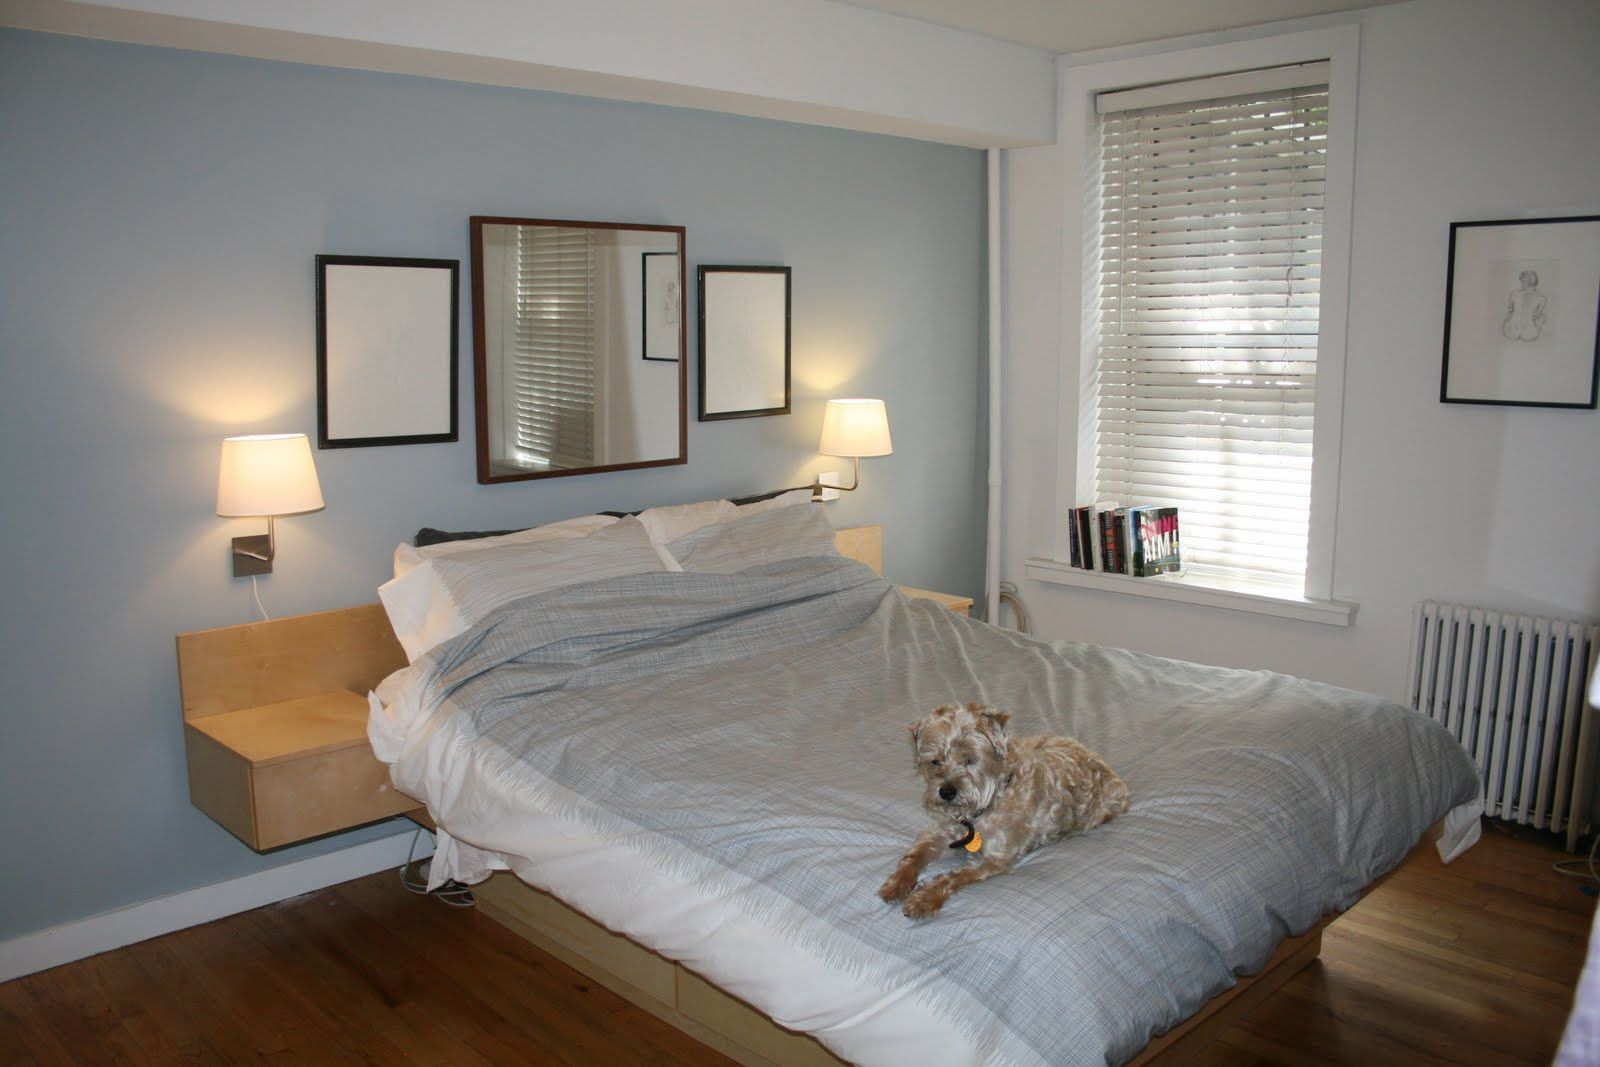 Bed against the window  platform bed mirror above headboard  master bedroom ideas